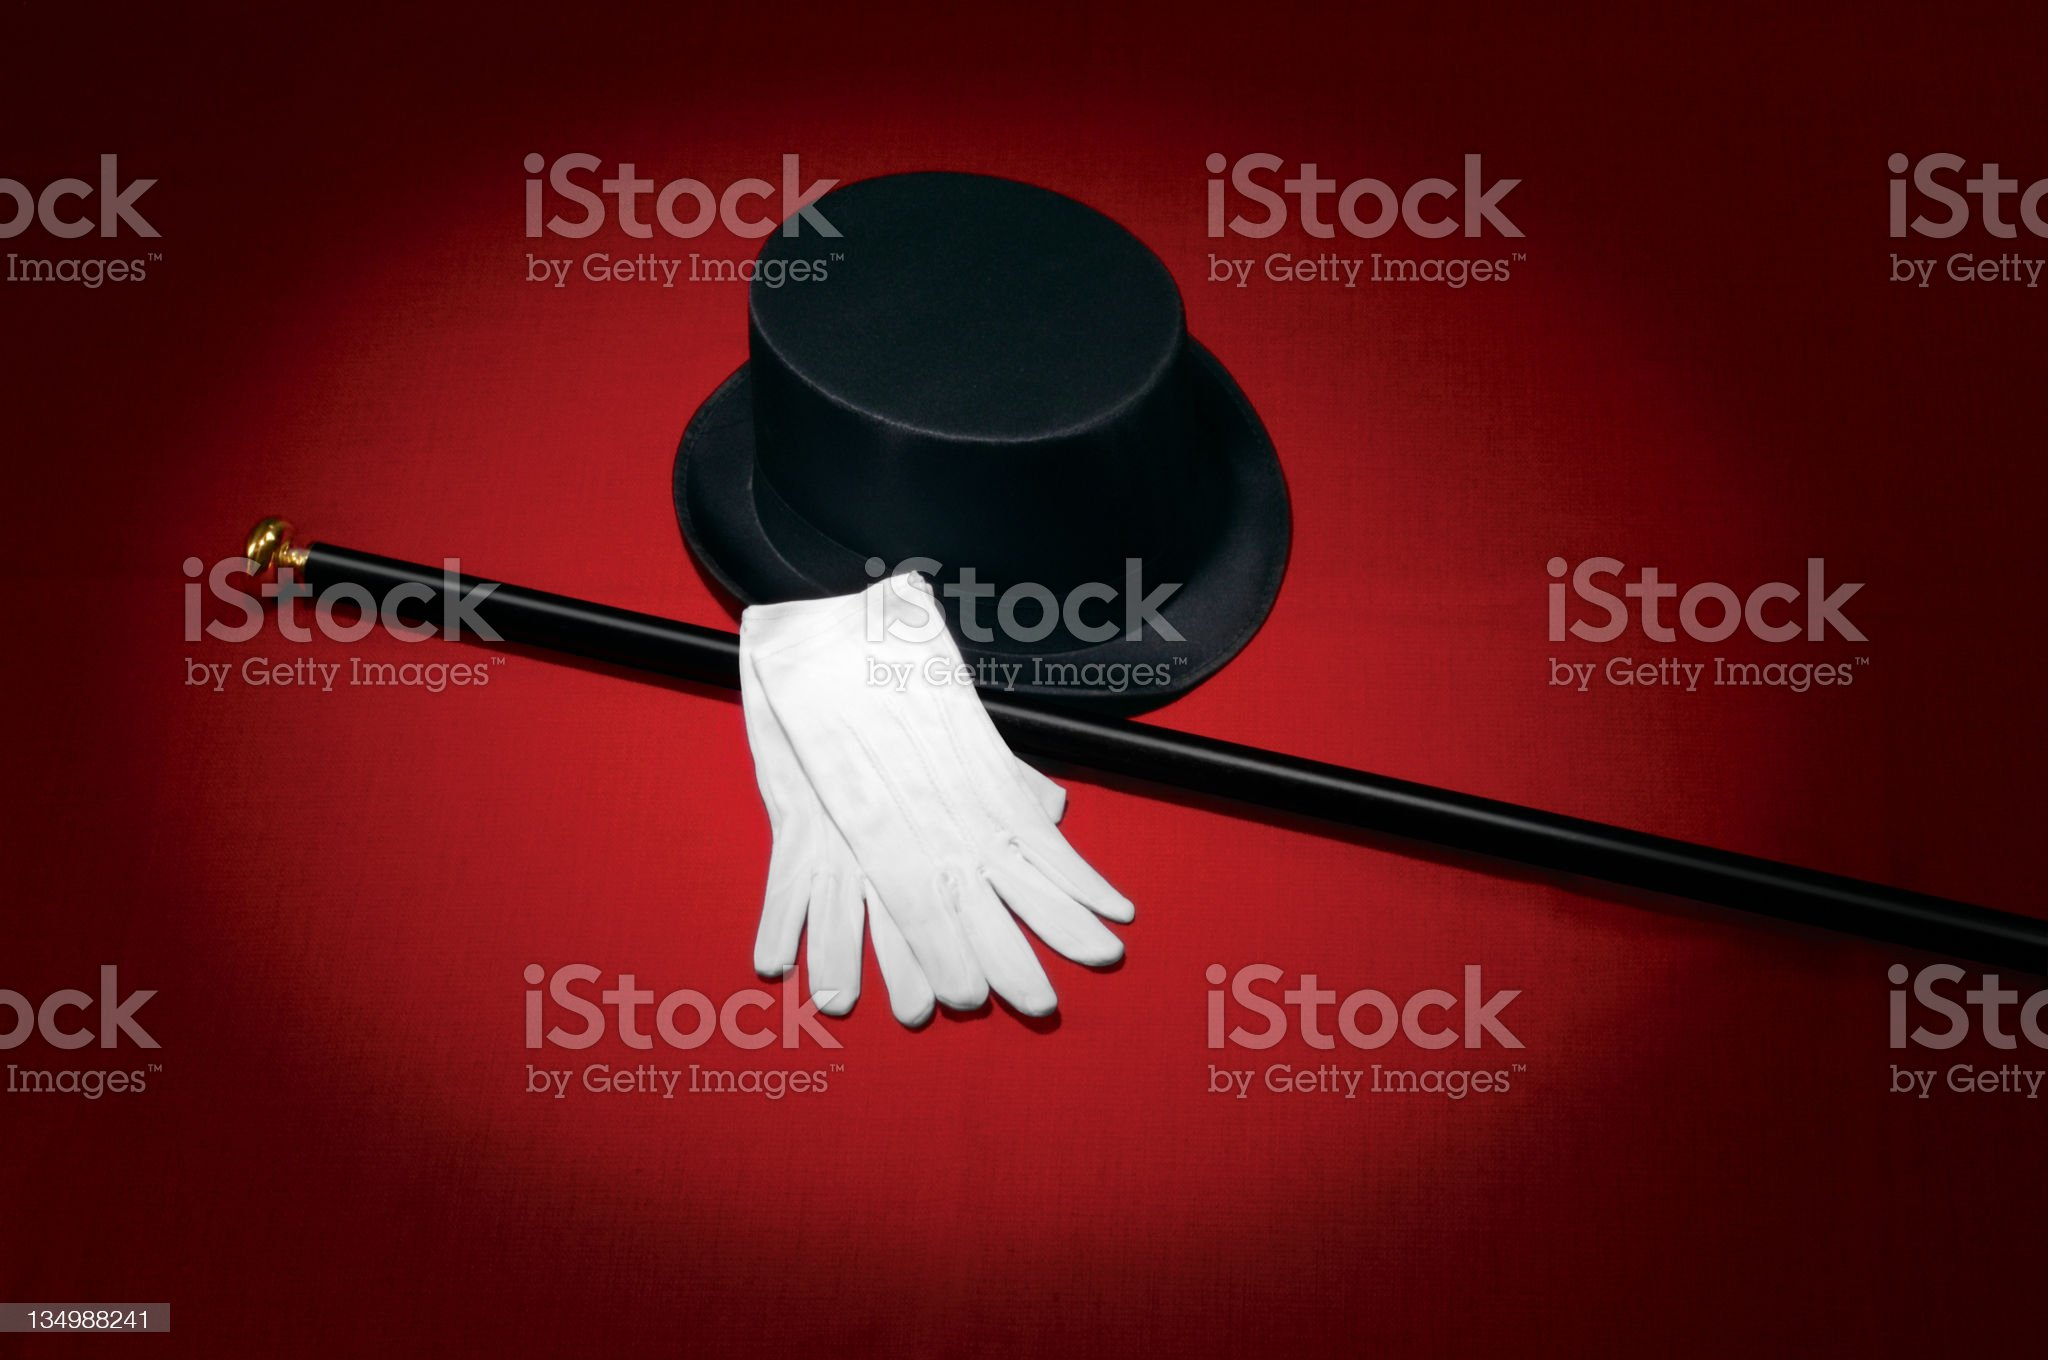 Entertainer's hat, cane, and gloves on a red background royalty-free stock photo